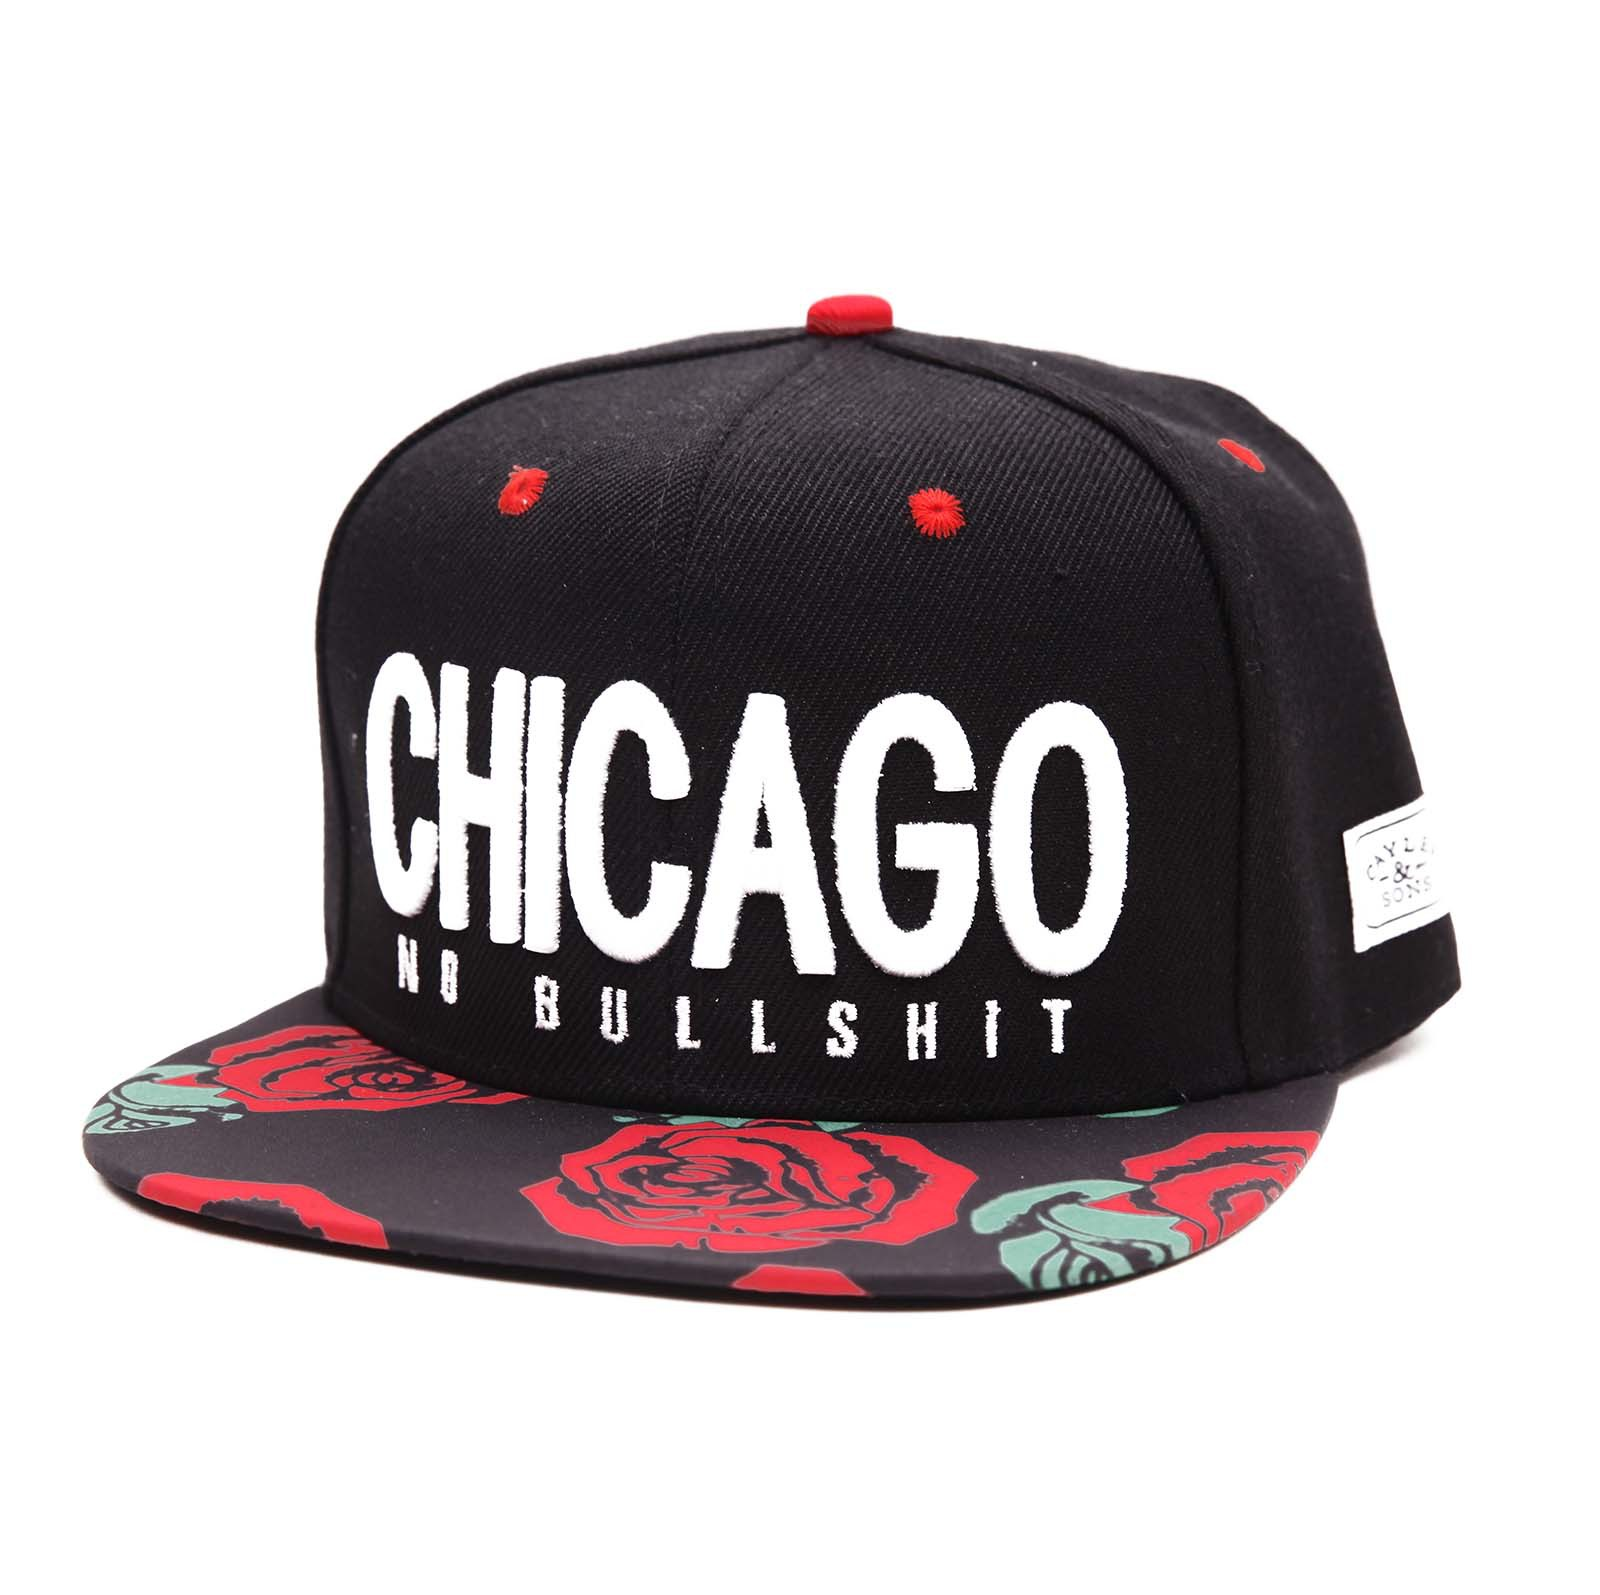 New Fashion Embroidery Cayler Chicago Rose Garden Visor Awesome Love Cap Hip Hop Casual Snapback Hats for Men Women(China (Mainland))